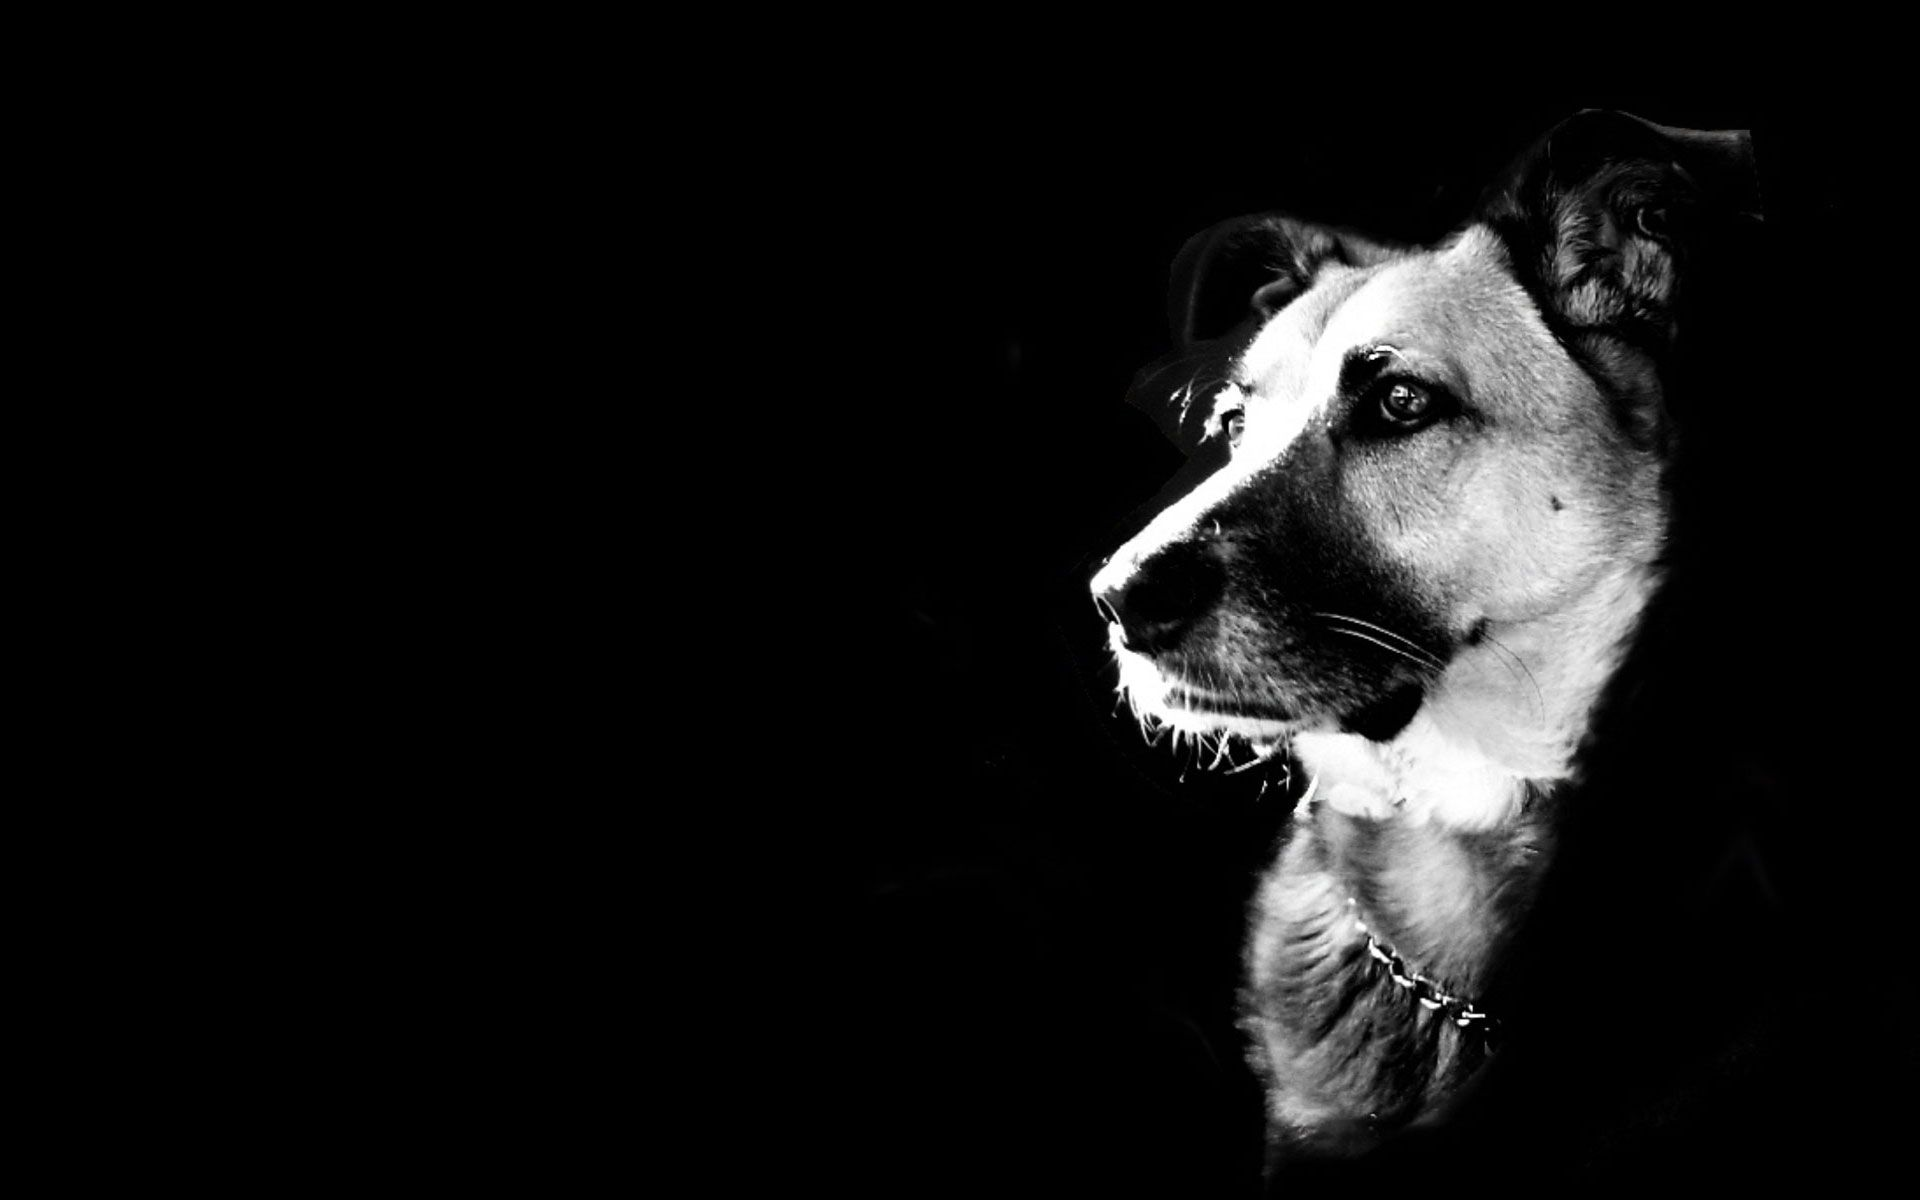 wallpaper 10595 1920x1200 px | wallpaper | pinterest | dog and animal